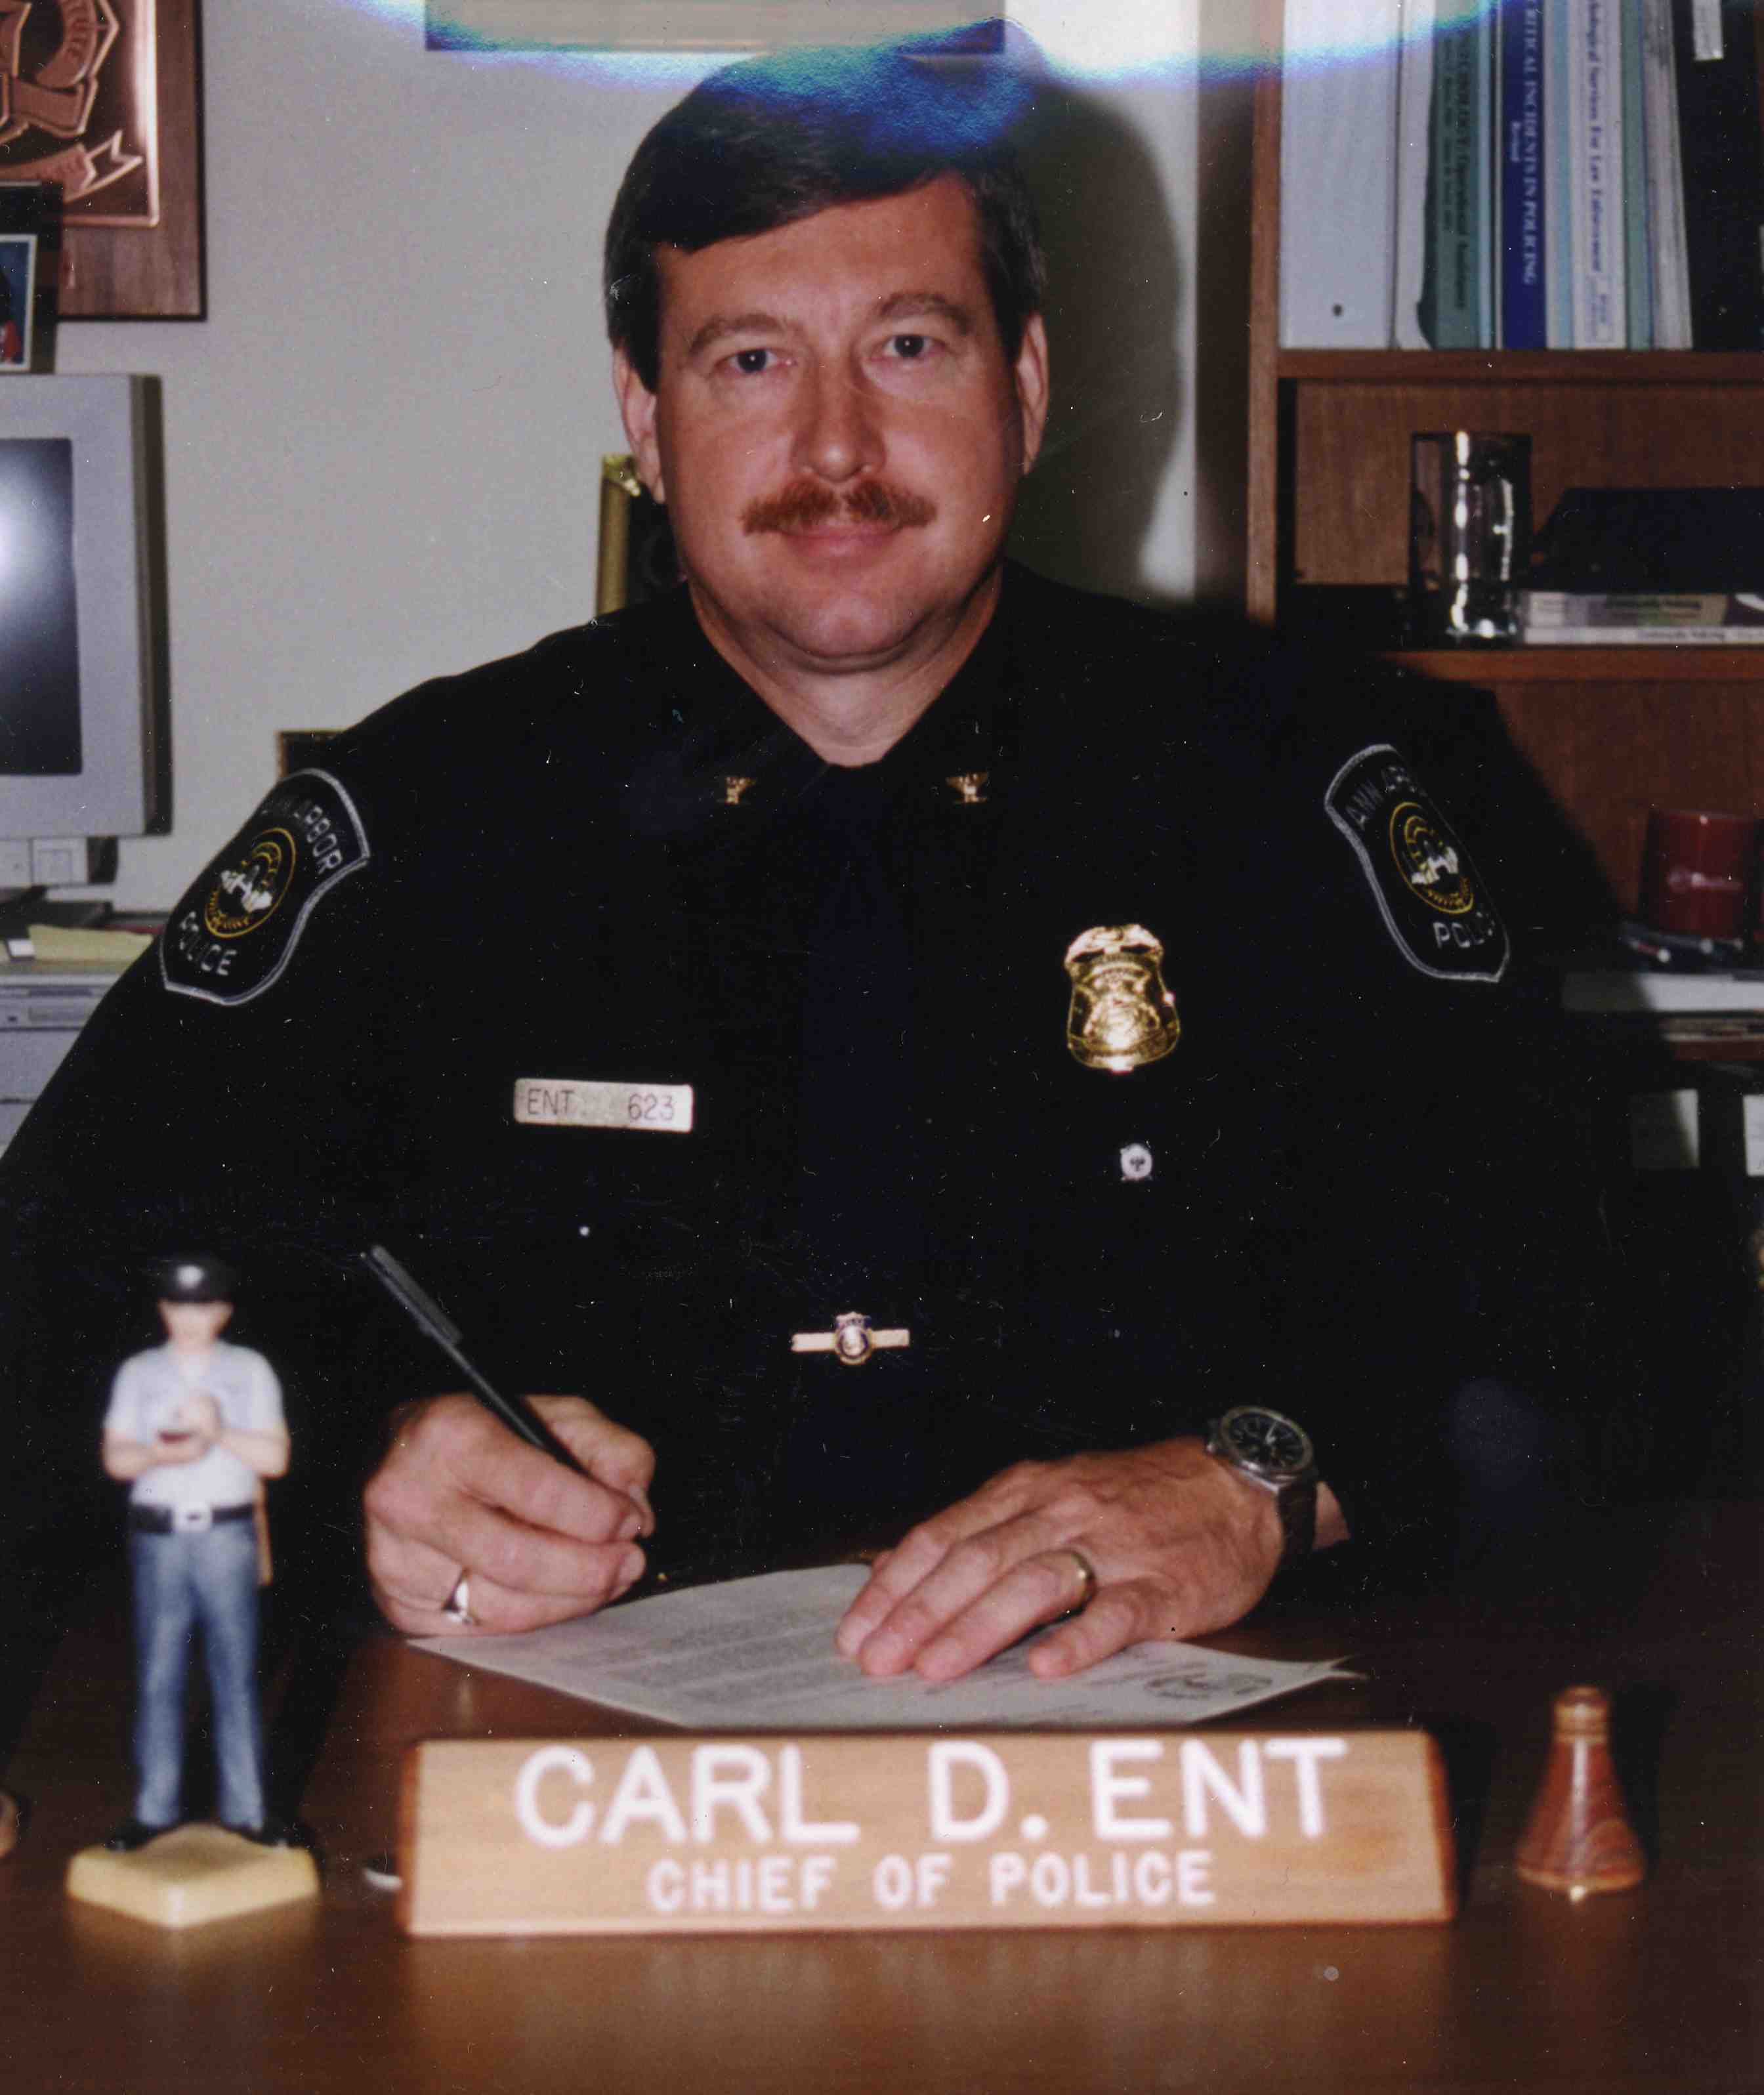 Ann Arbor Police Chief Carl D. Ent, 1995-2000 image